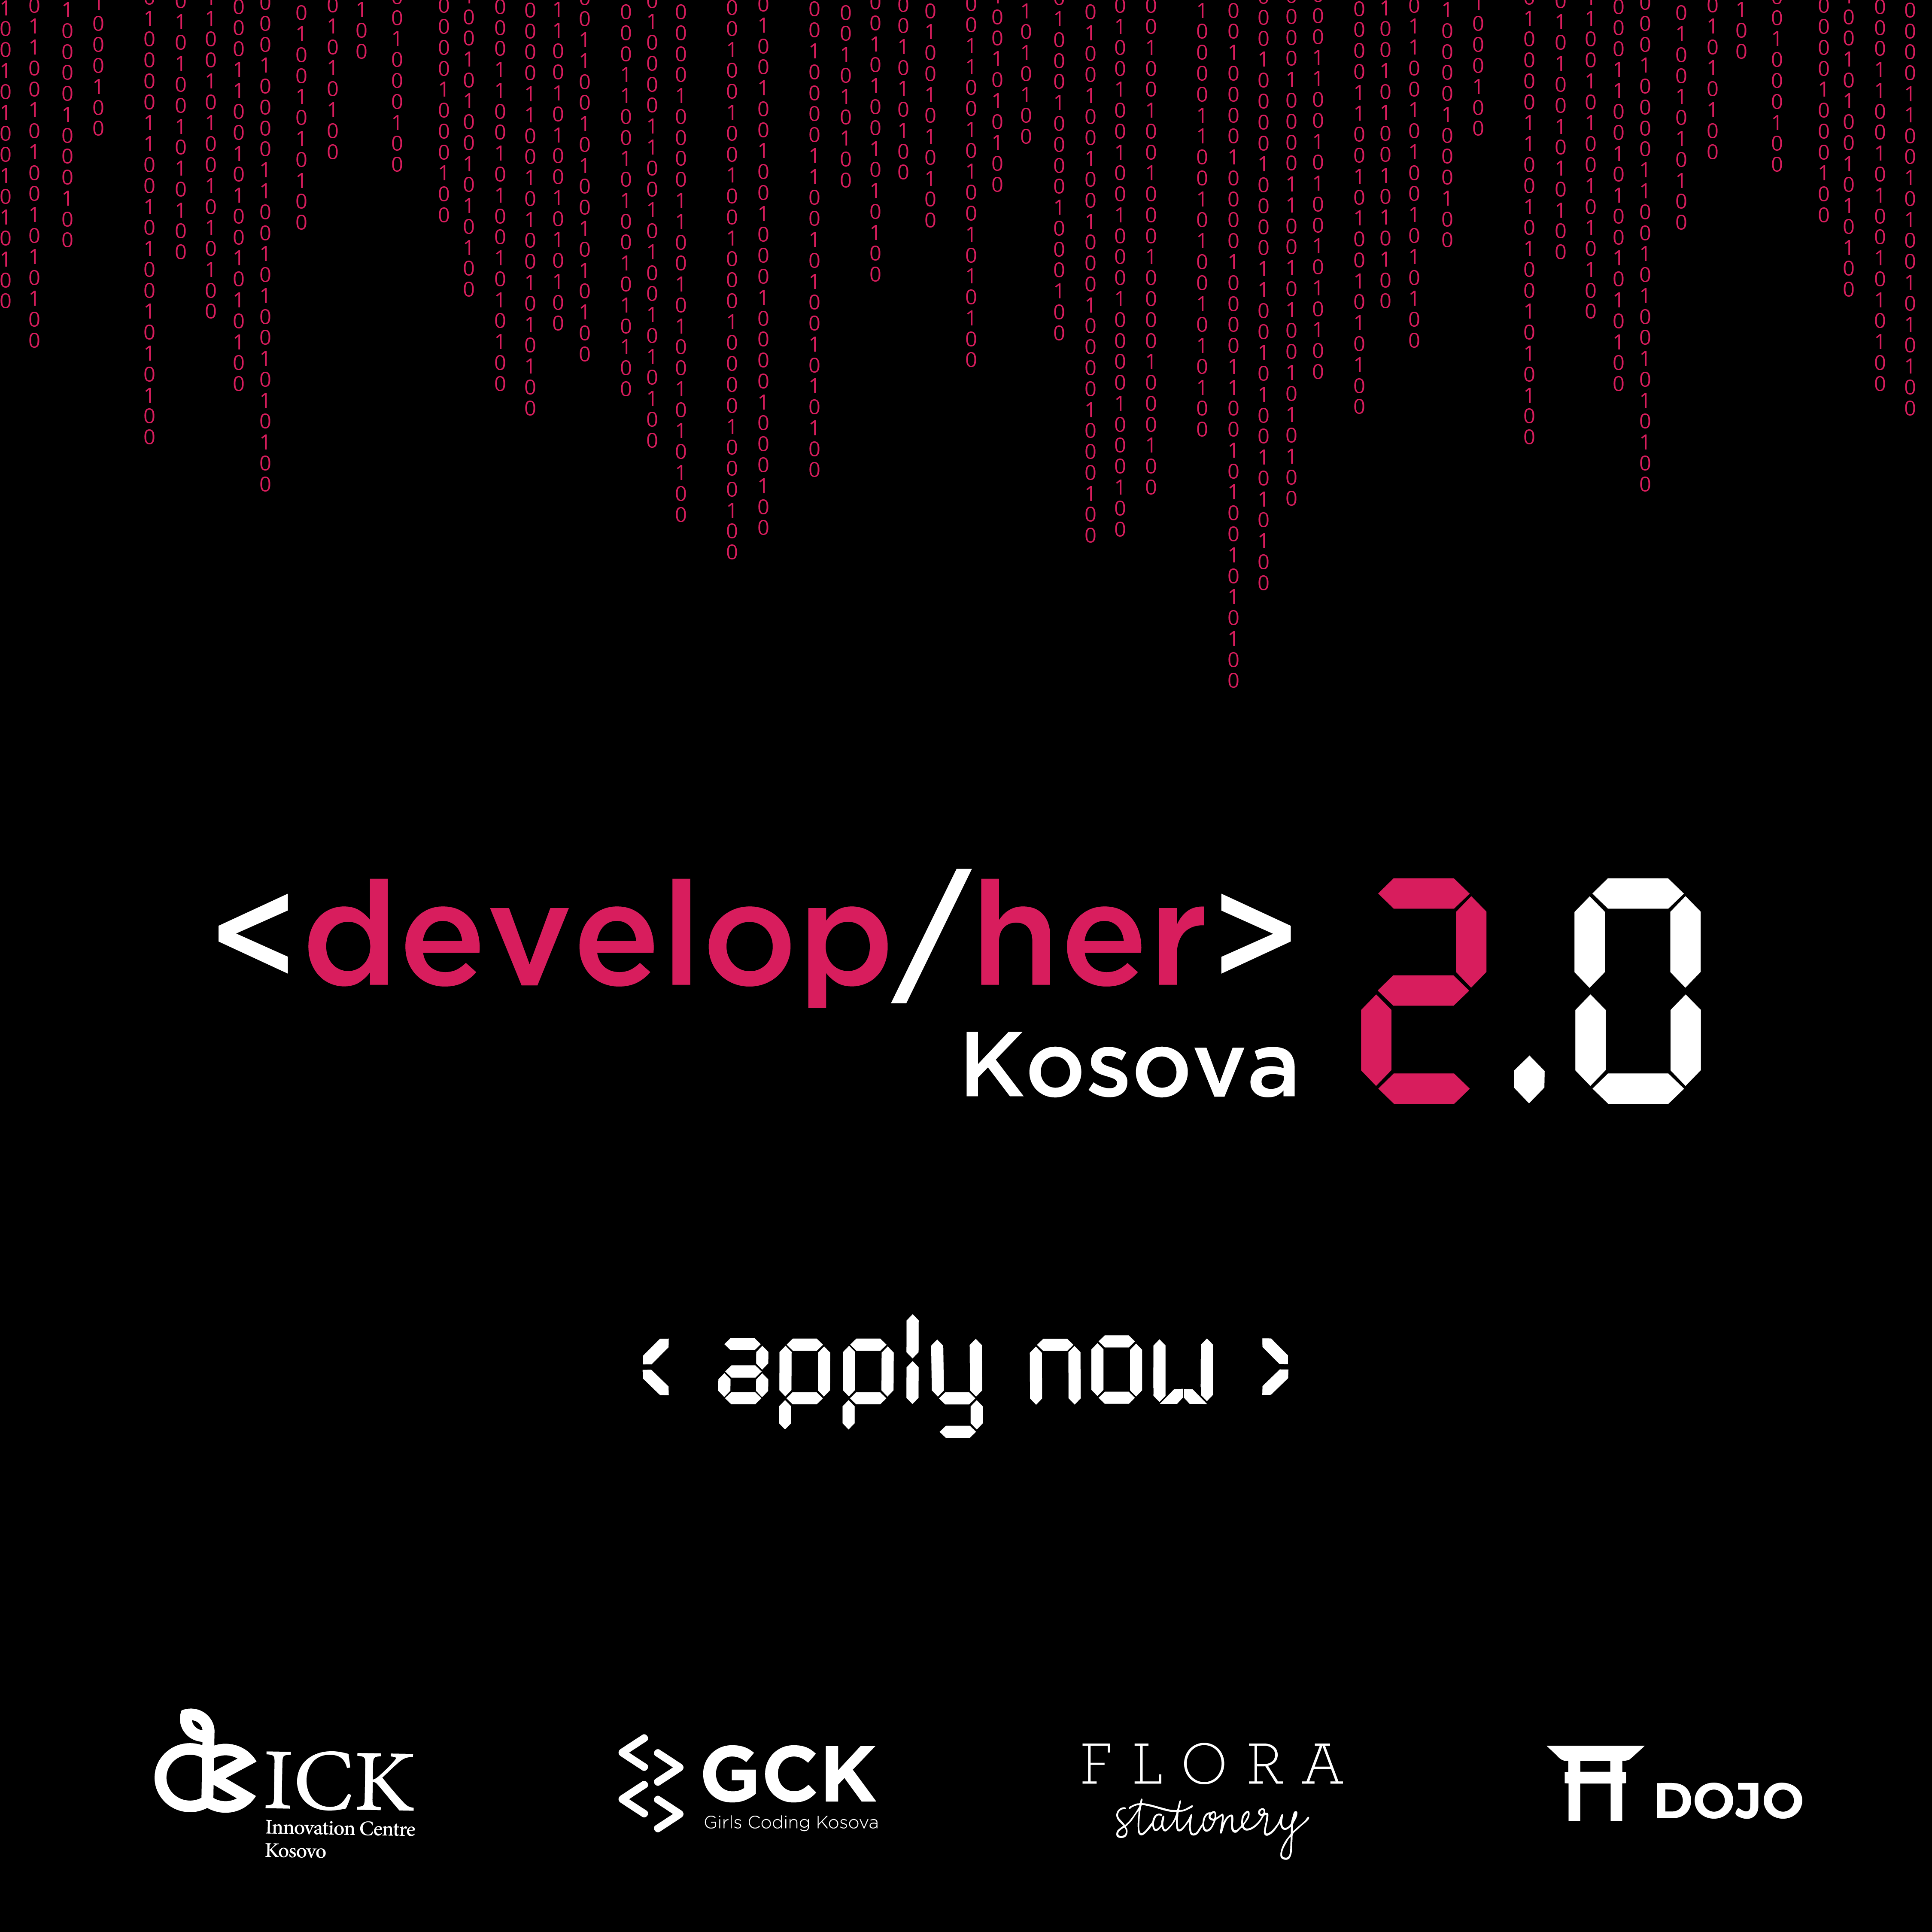 DevelopHer 2.0 Launching Event